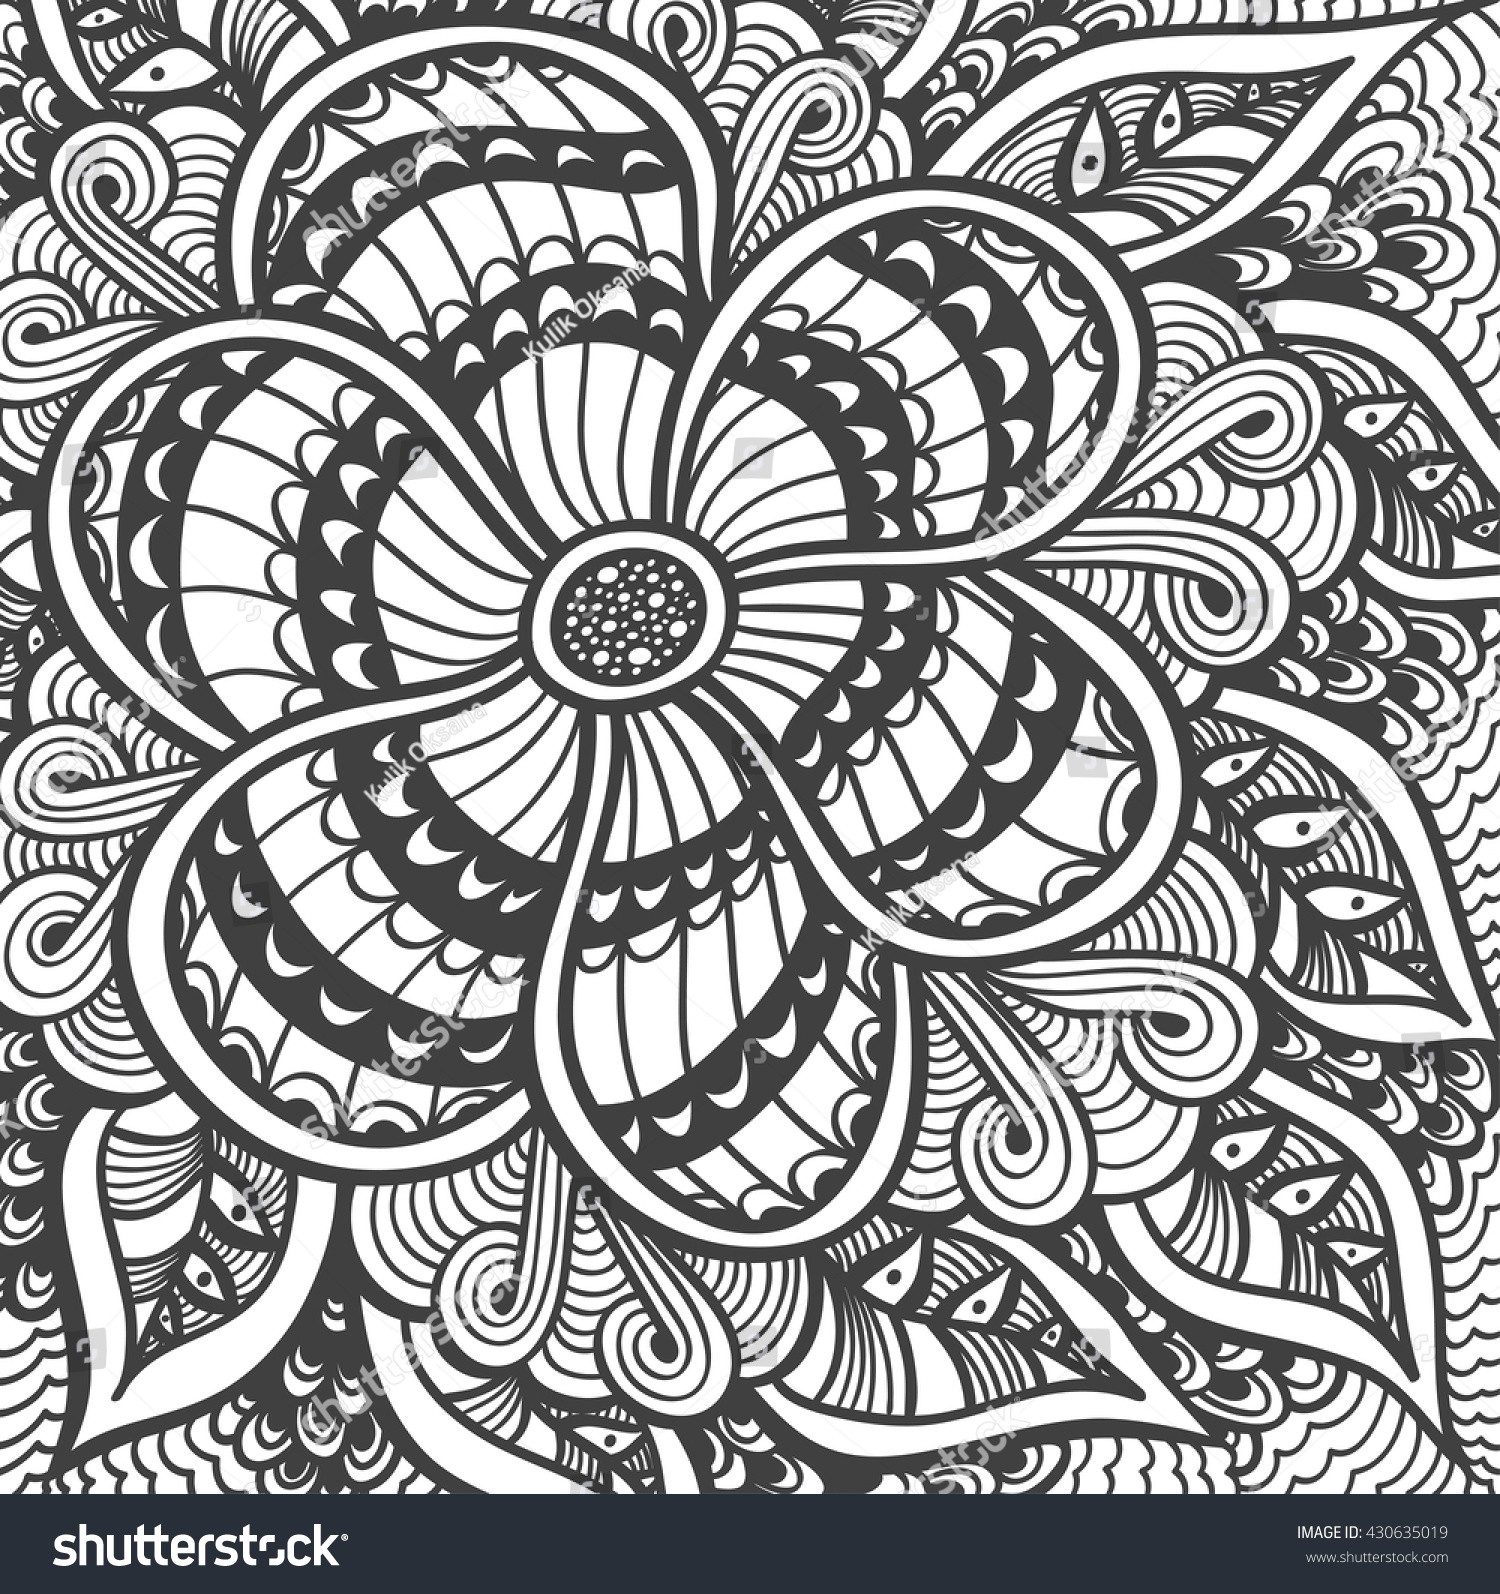 Background With Zen Doodle Flowers Or Tangle Pattern Black On White For Coloring Page